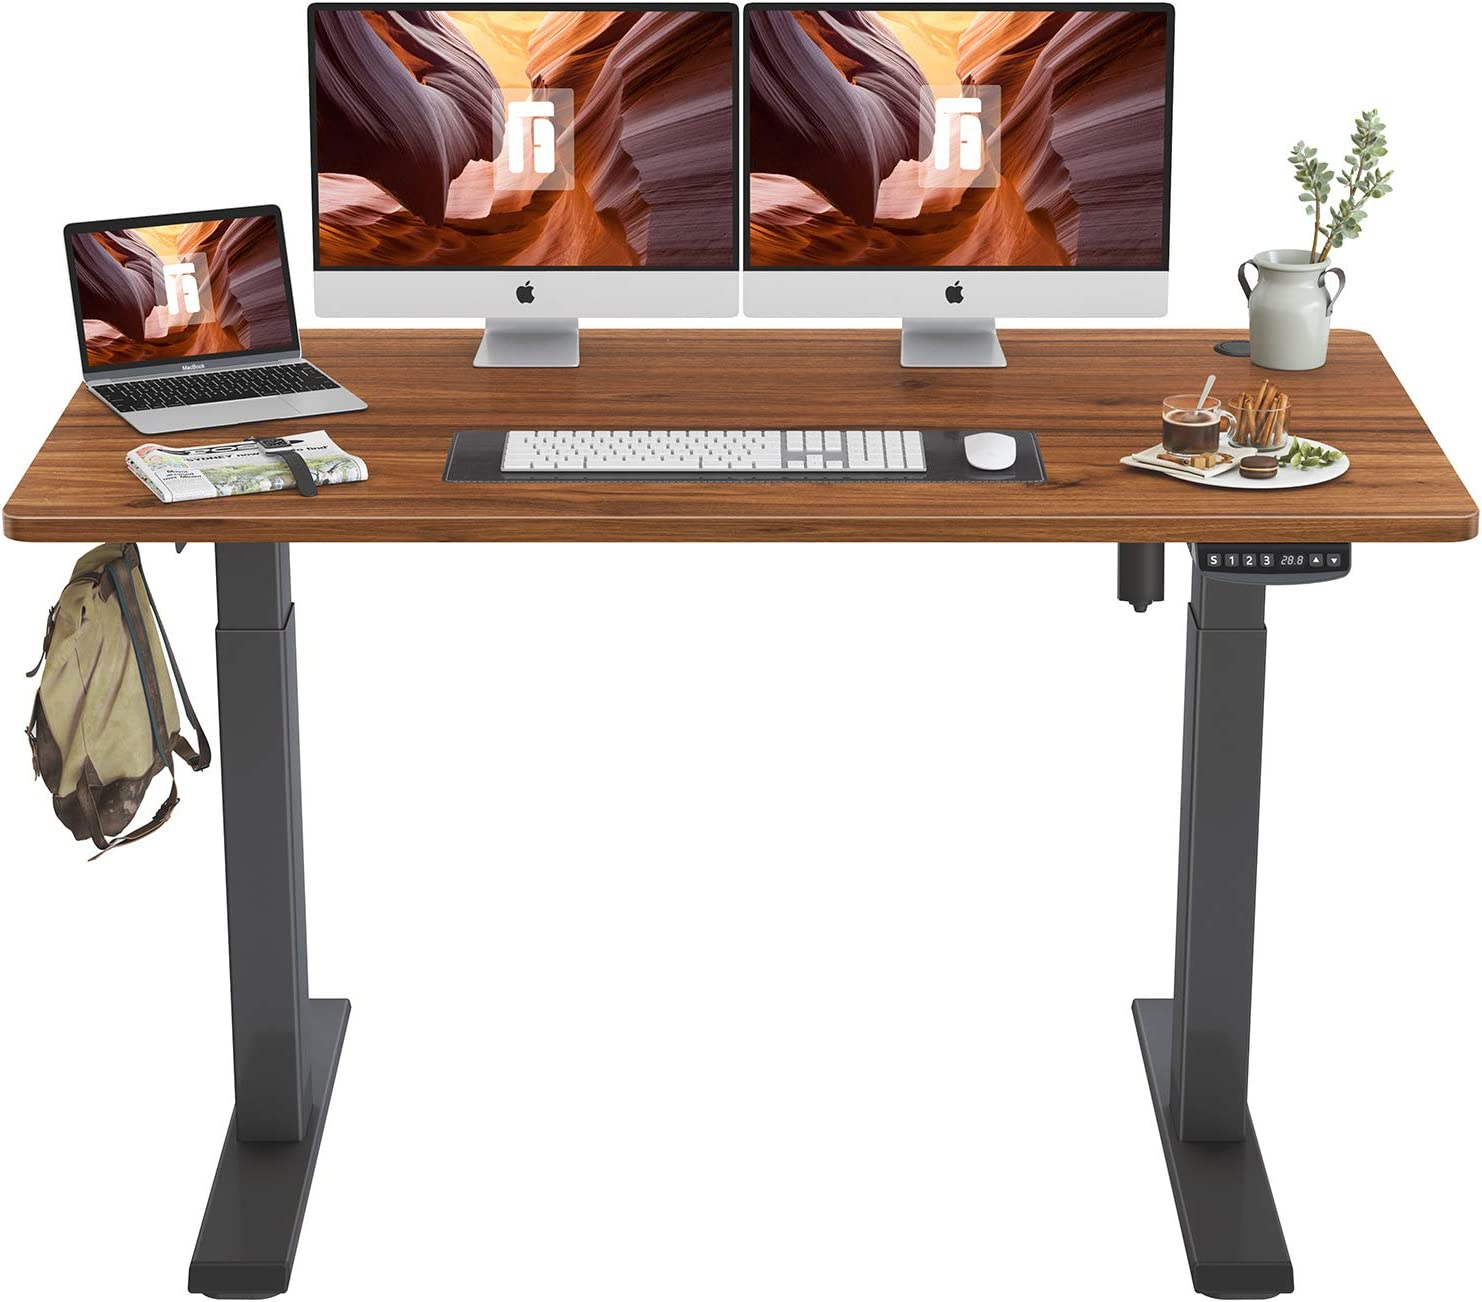 FEZIBO Height Adjustable Electric Standing Desk, 55 x 24 Inches Stand Up Table, Sit Stand Home Office Desk with Splice Board, Black Frame/Espresso Top